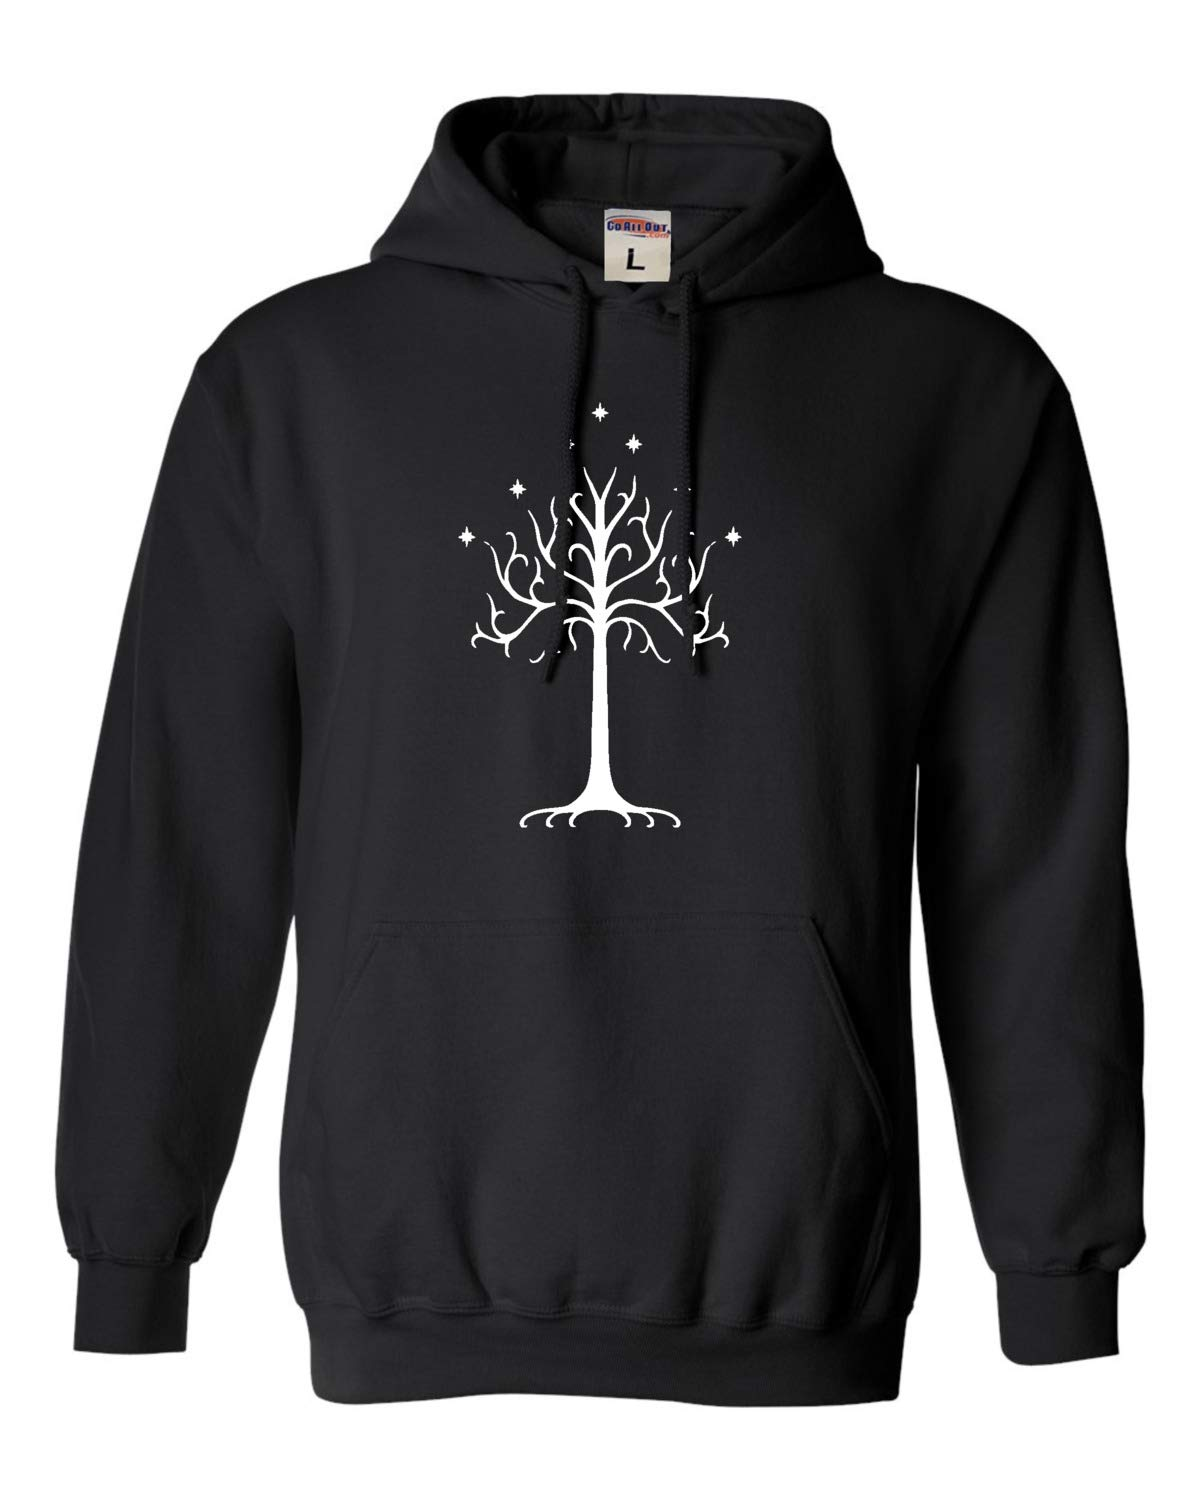 Go All Out Adult and Youth Gondor Tree Sweatshirt Hoodie